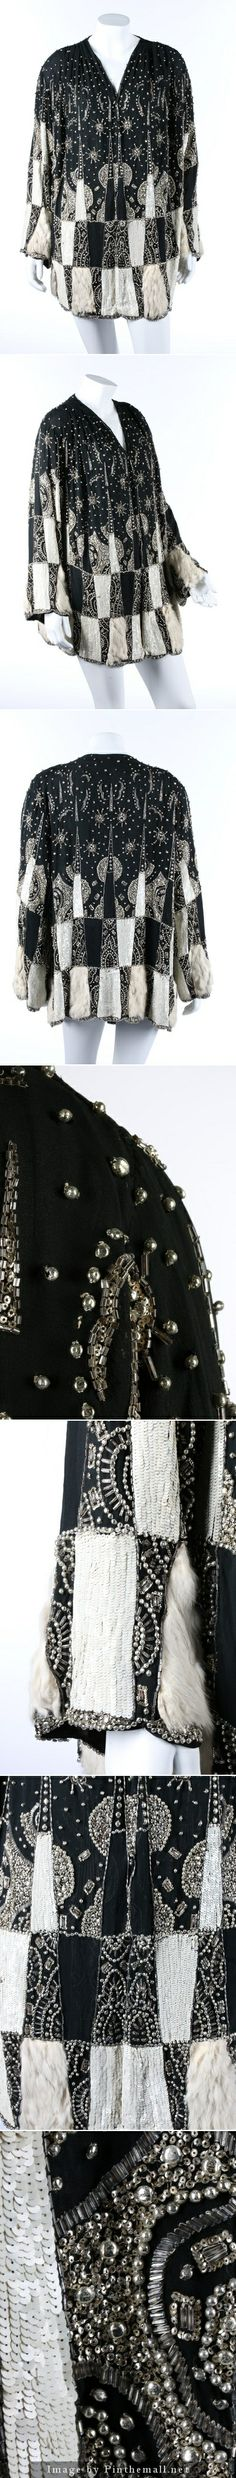 A beaded and sequined couture evening jacket, circa 1928. the black chiffon ground adorned with chequered bands in white sequins and fur, with stylised star and moon motifs in silver bugle beads, blister beads and tiny sequins. KTA